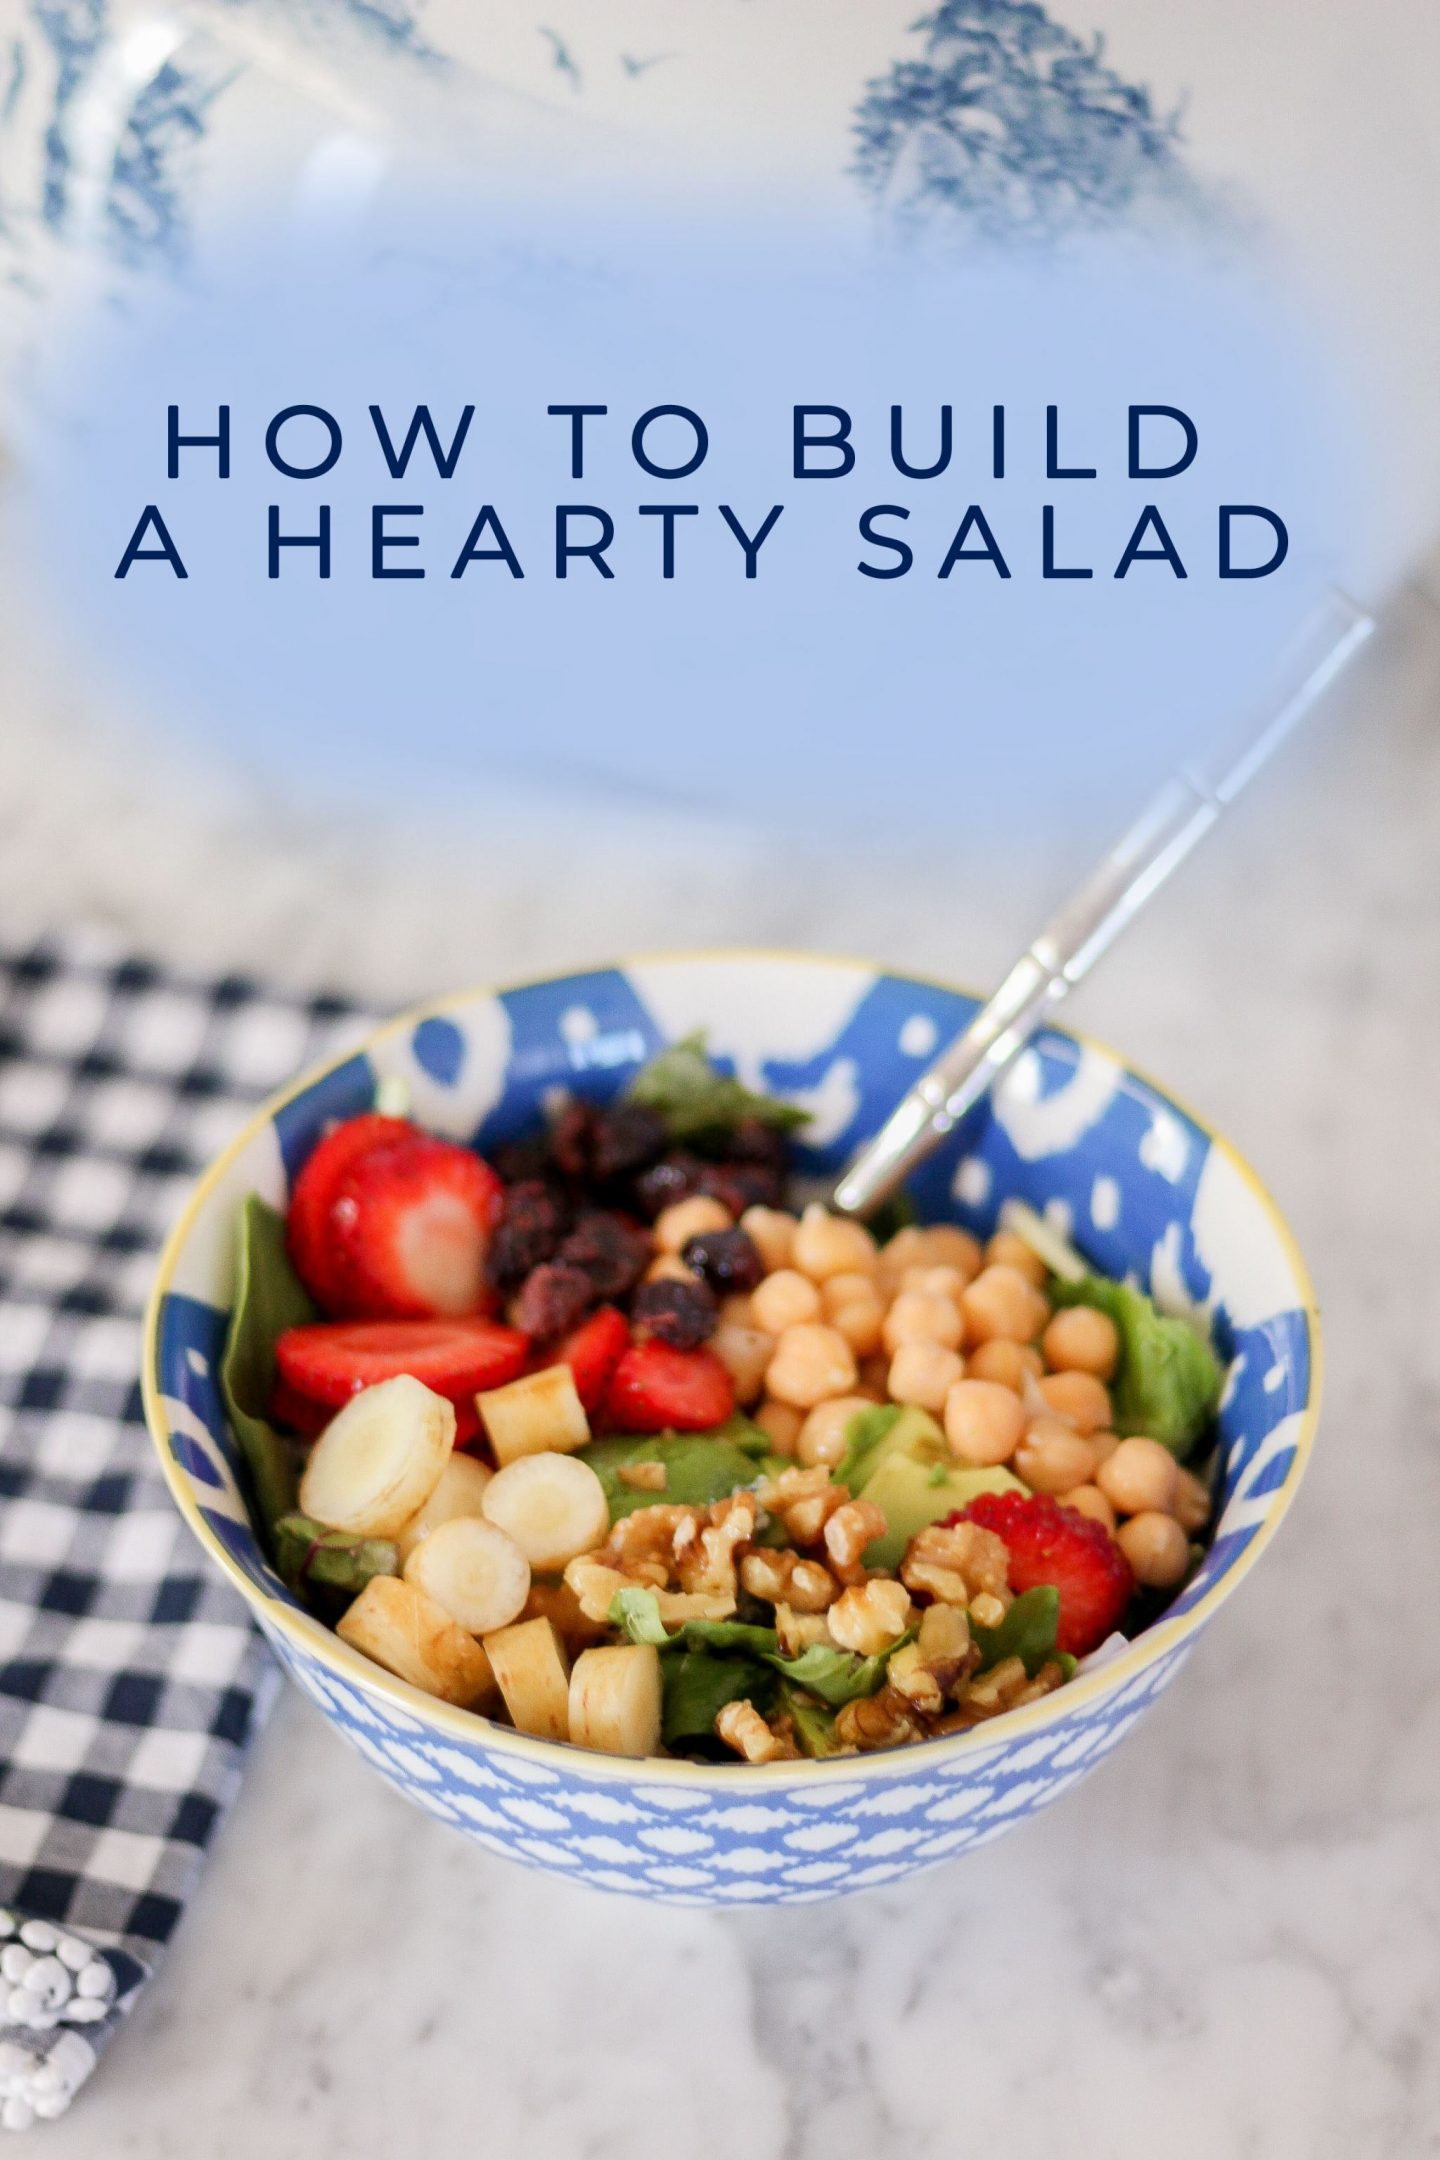 How To Build a Hearty Salad